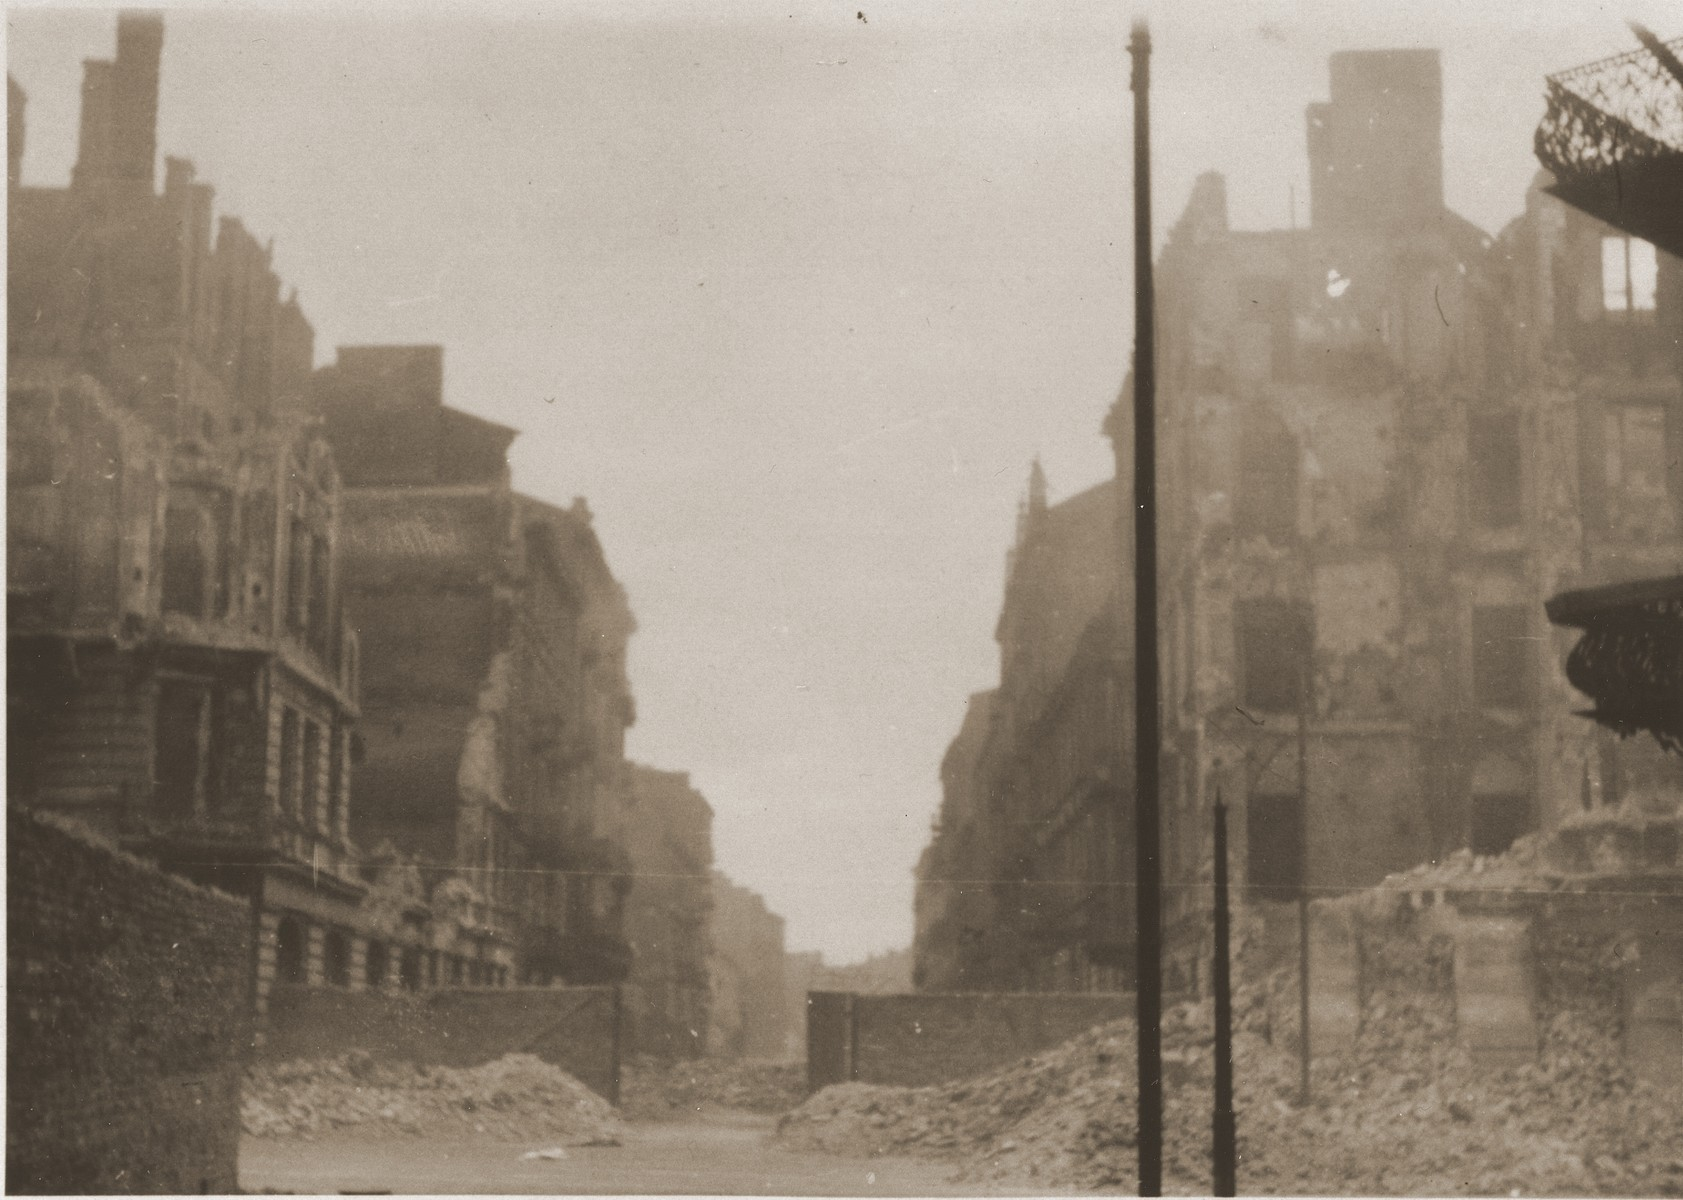 Ruins in the Warsaw ghetto after its destruction by the SS.